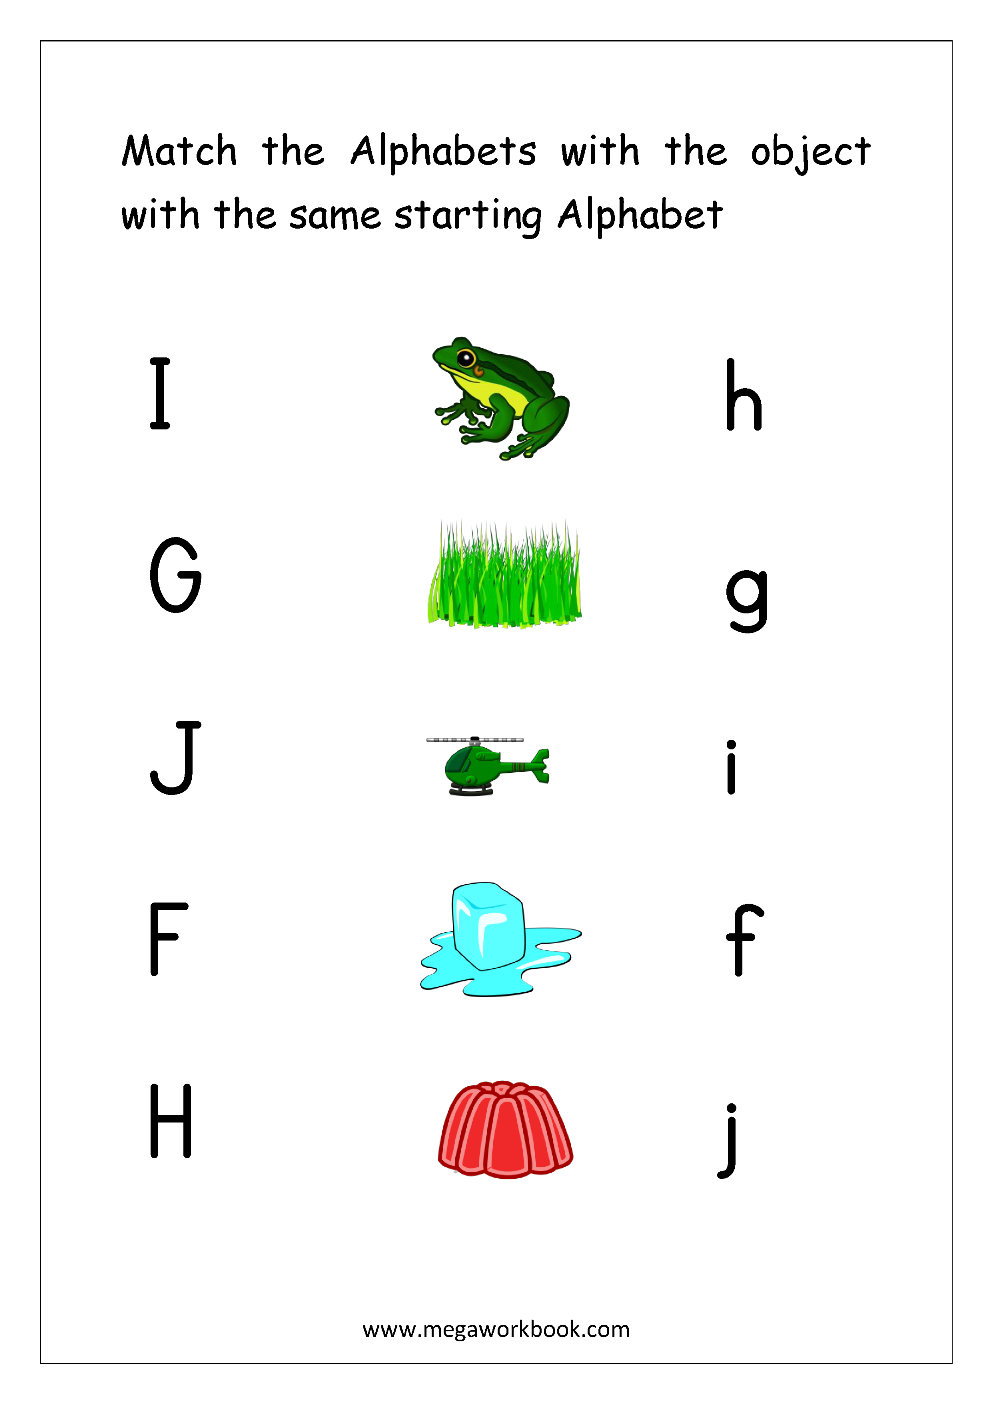 Free English Worksheets - Alphabet Matching - Megaworkbook intended for Alphabet Matching Worksheets Pdf